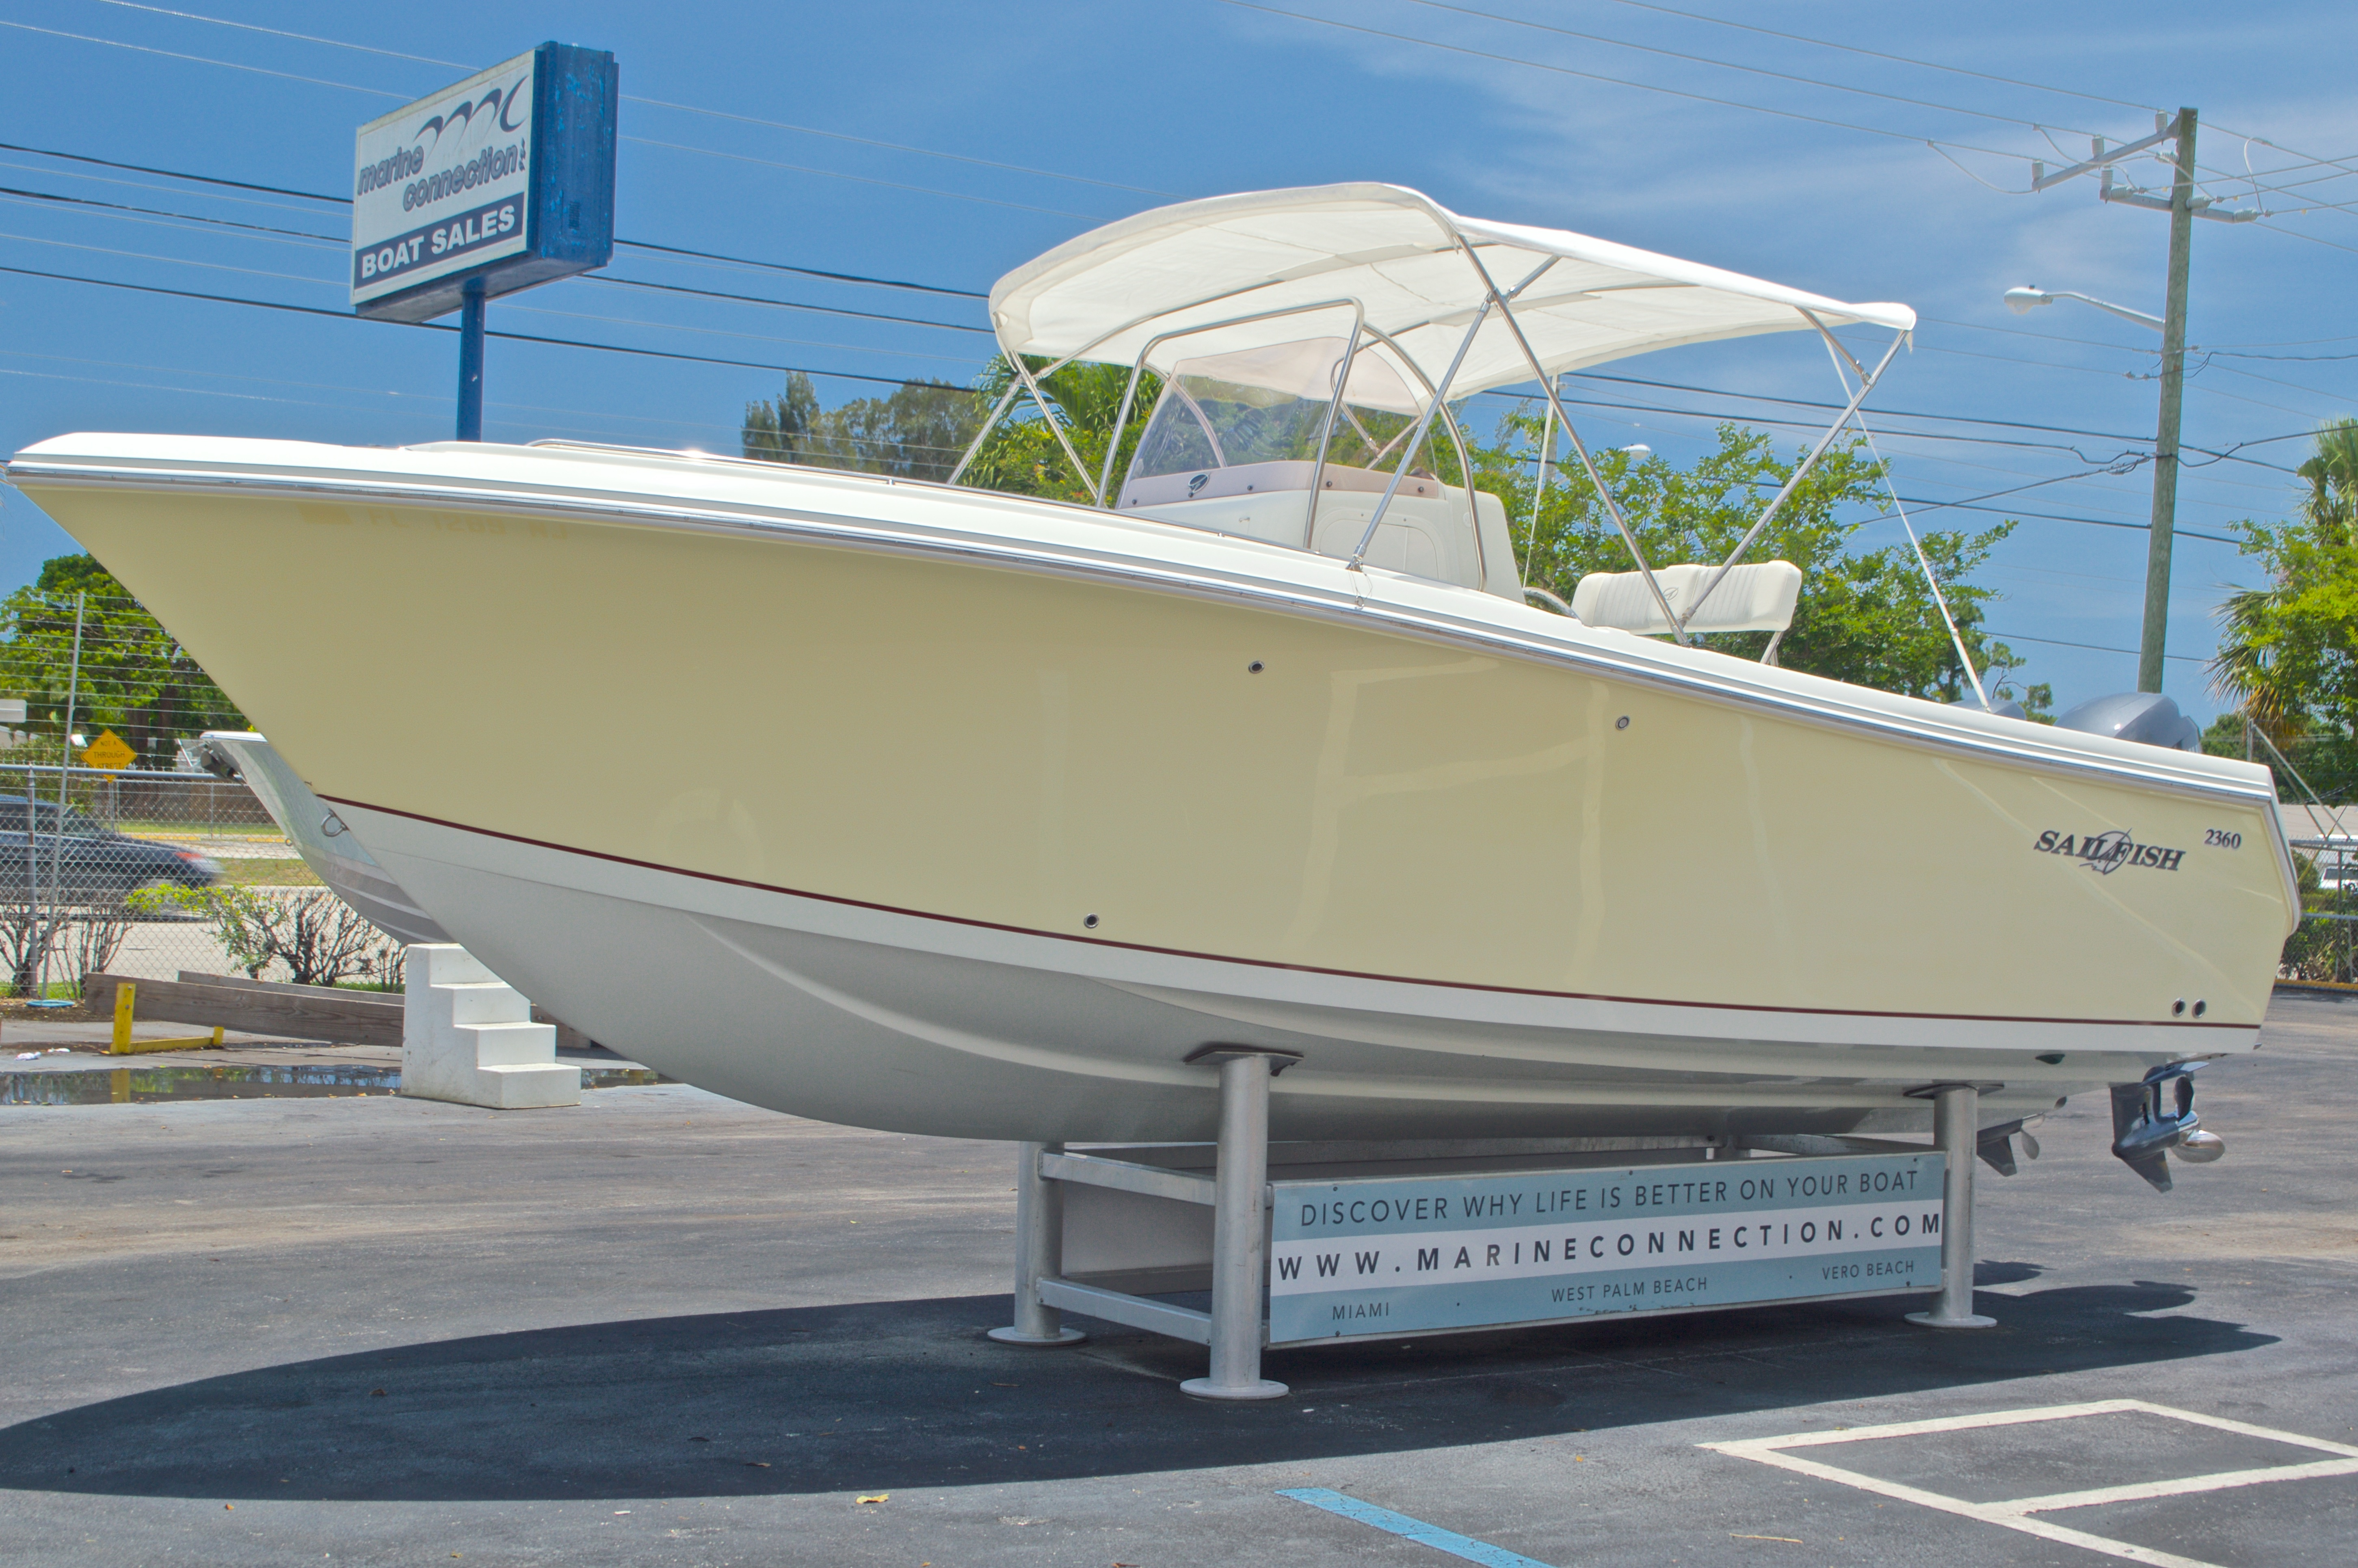 Thumbnail 3 for Used 2007 Sailfish 2360 CC Center Console boat for sale in West Palm Beach, FL